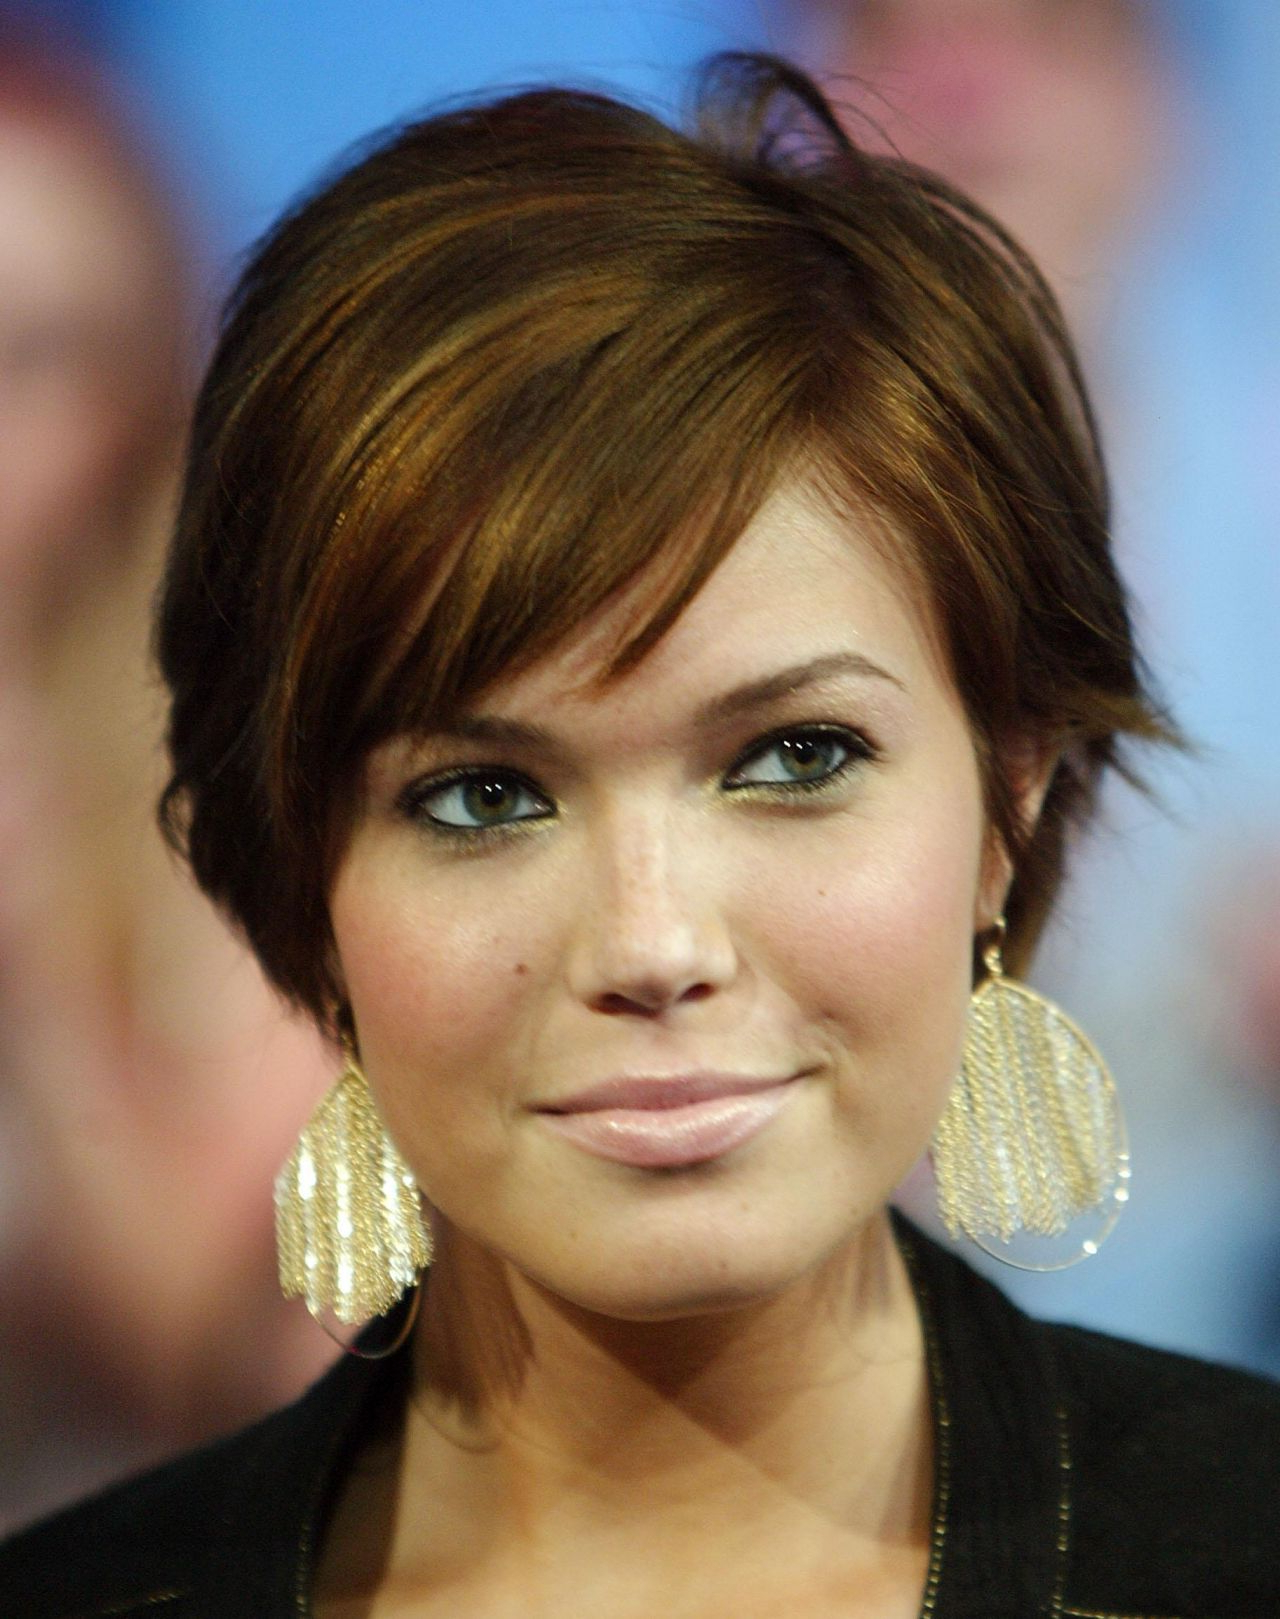 Short Female Hairstyles For Round Faces 2018 | Beauty | Pinterest With Funky Short Haircuts For Round Faces (View 12 of 25)